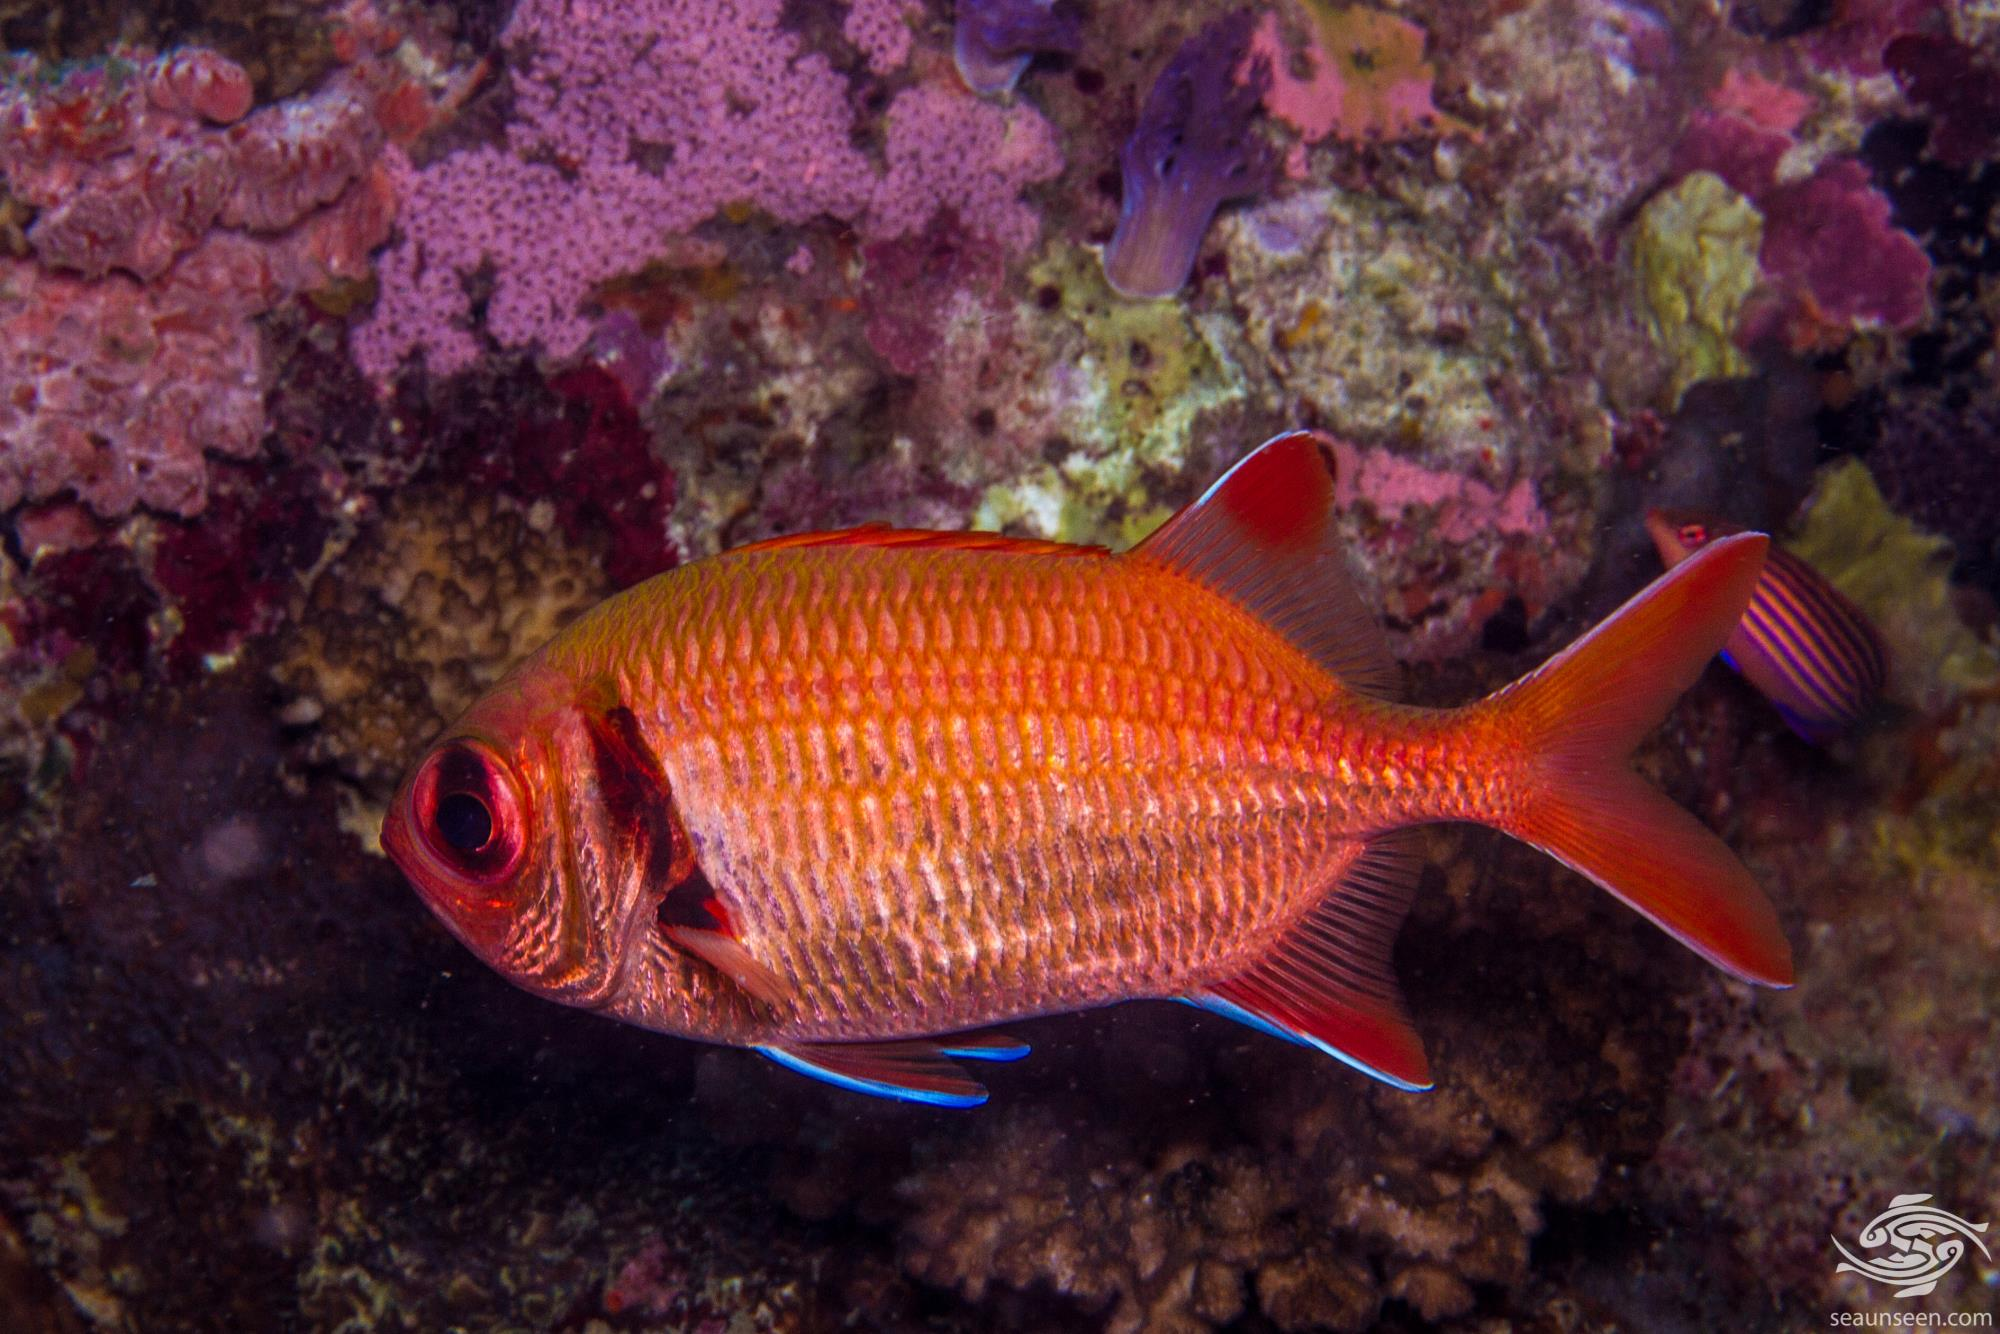 Epaulette Soldierfish (Myripristis kuntee) , is also known as the Shoulderbar Soldierfish, Kuntee Soldierfish and the Pearly Soldierfish